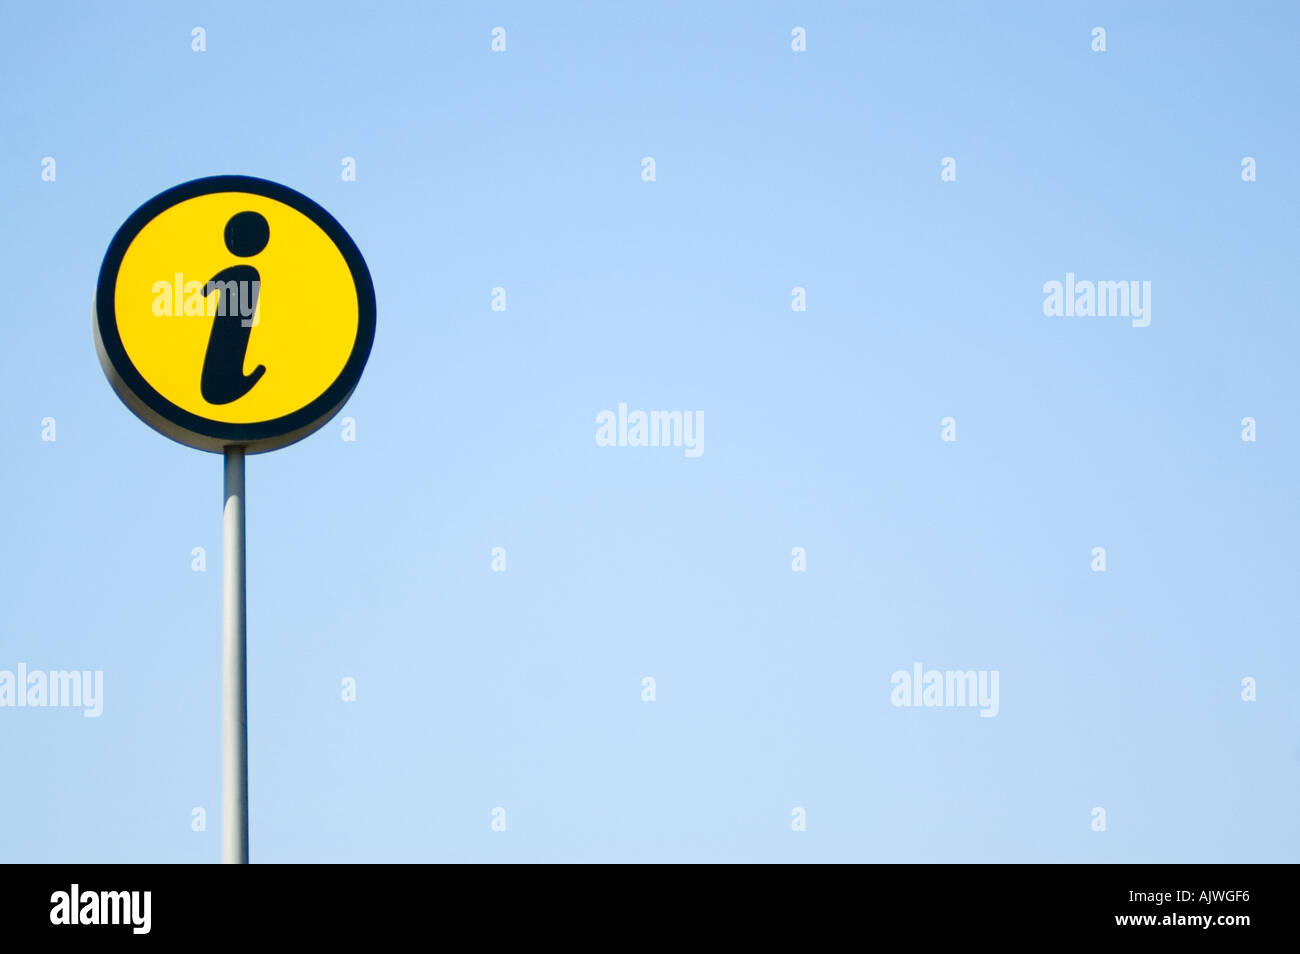 Road sign Info - Stock Image